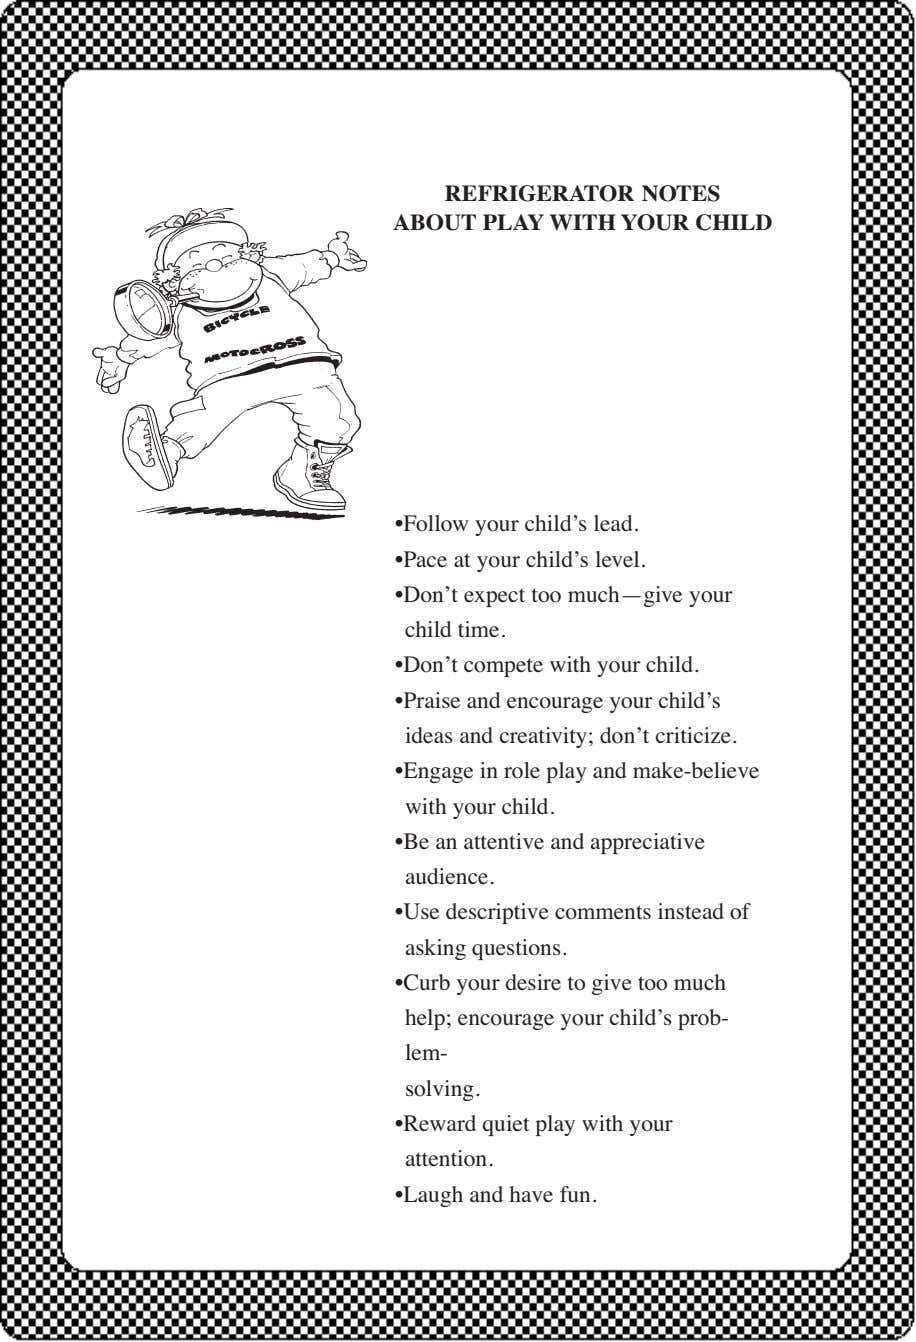 REFRIGERATOR NOTES ABOUT PLAY WITH YOUR CHILD •Follow your child's lead. •Pace at your child's